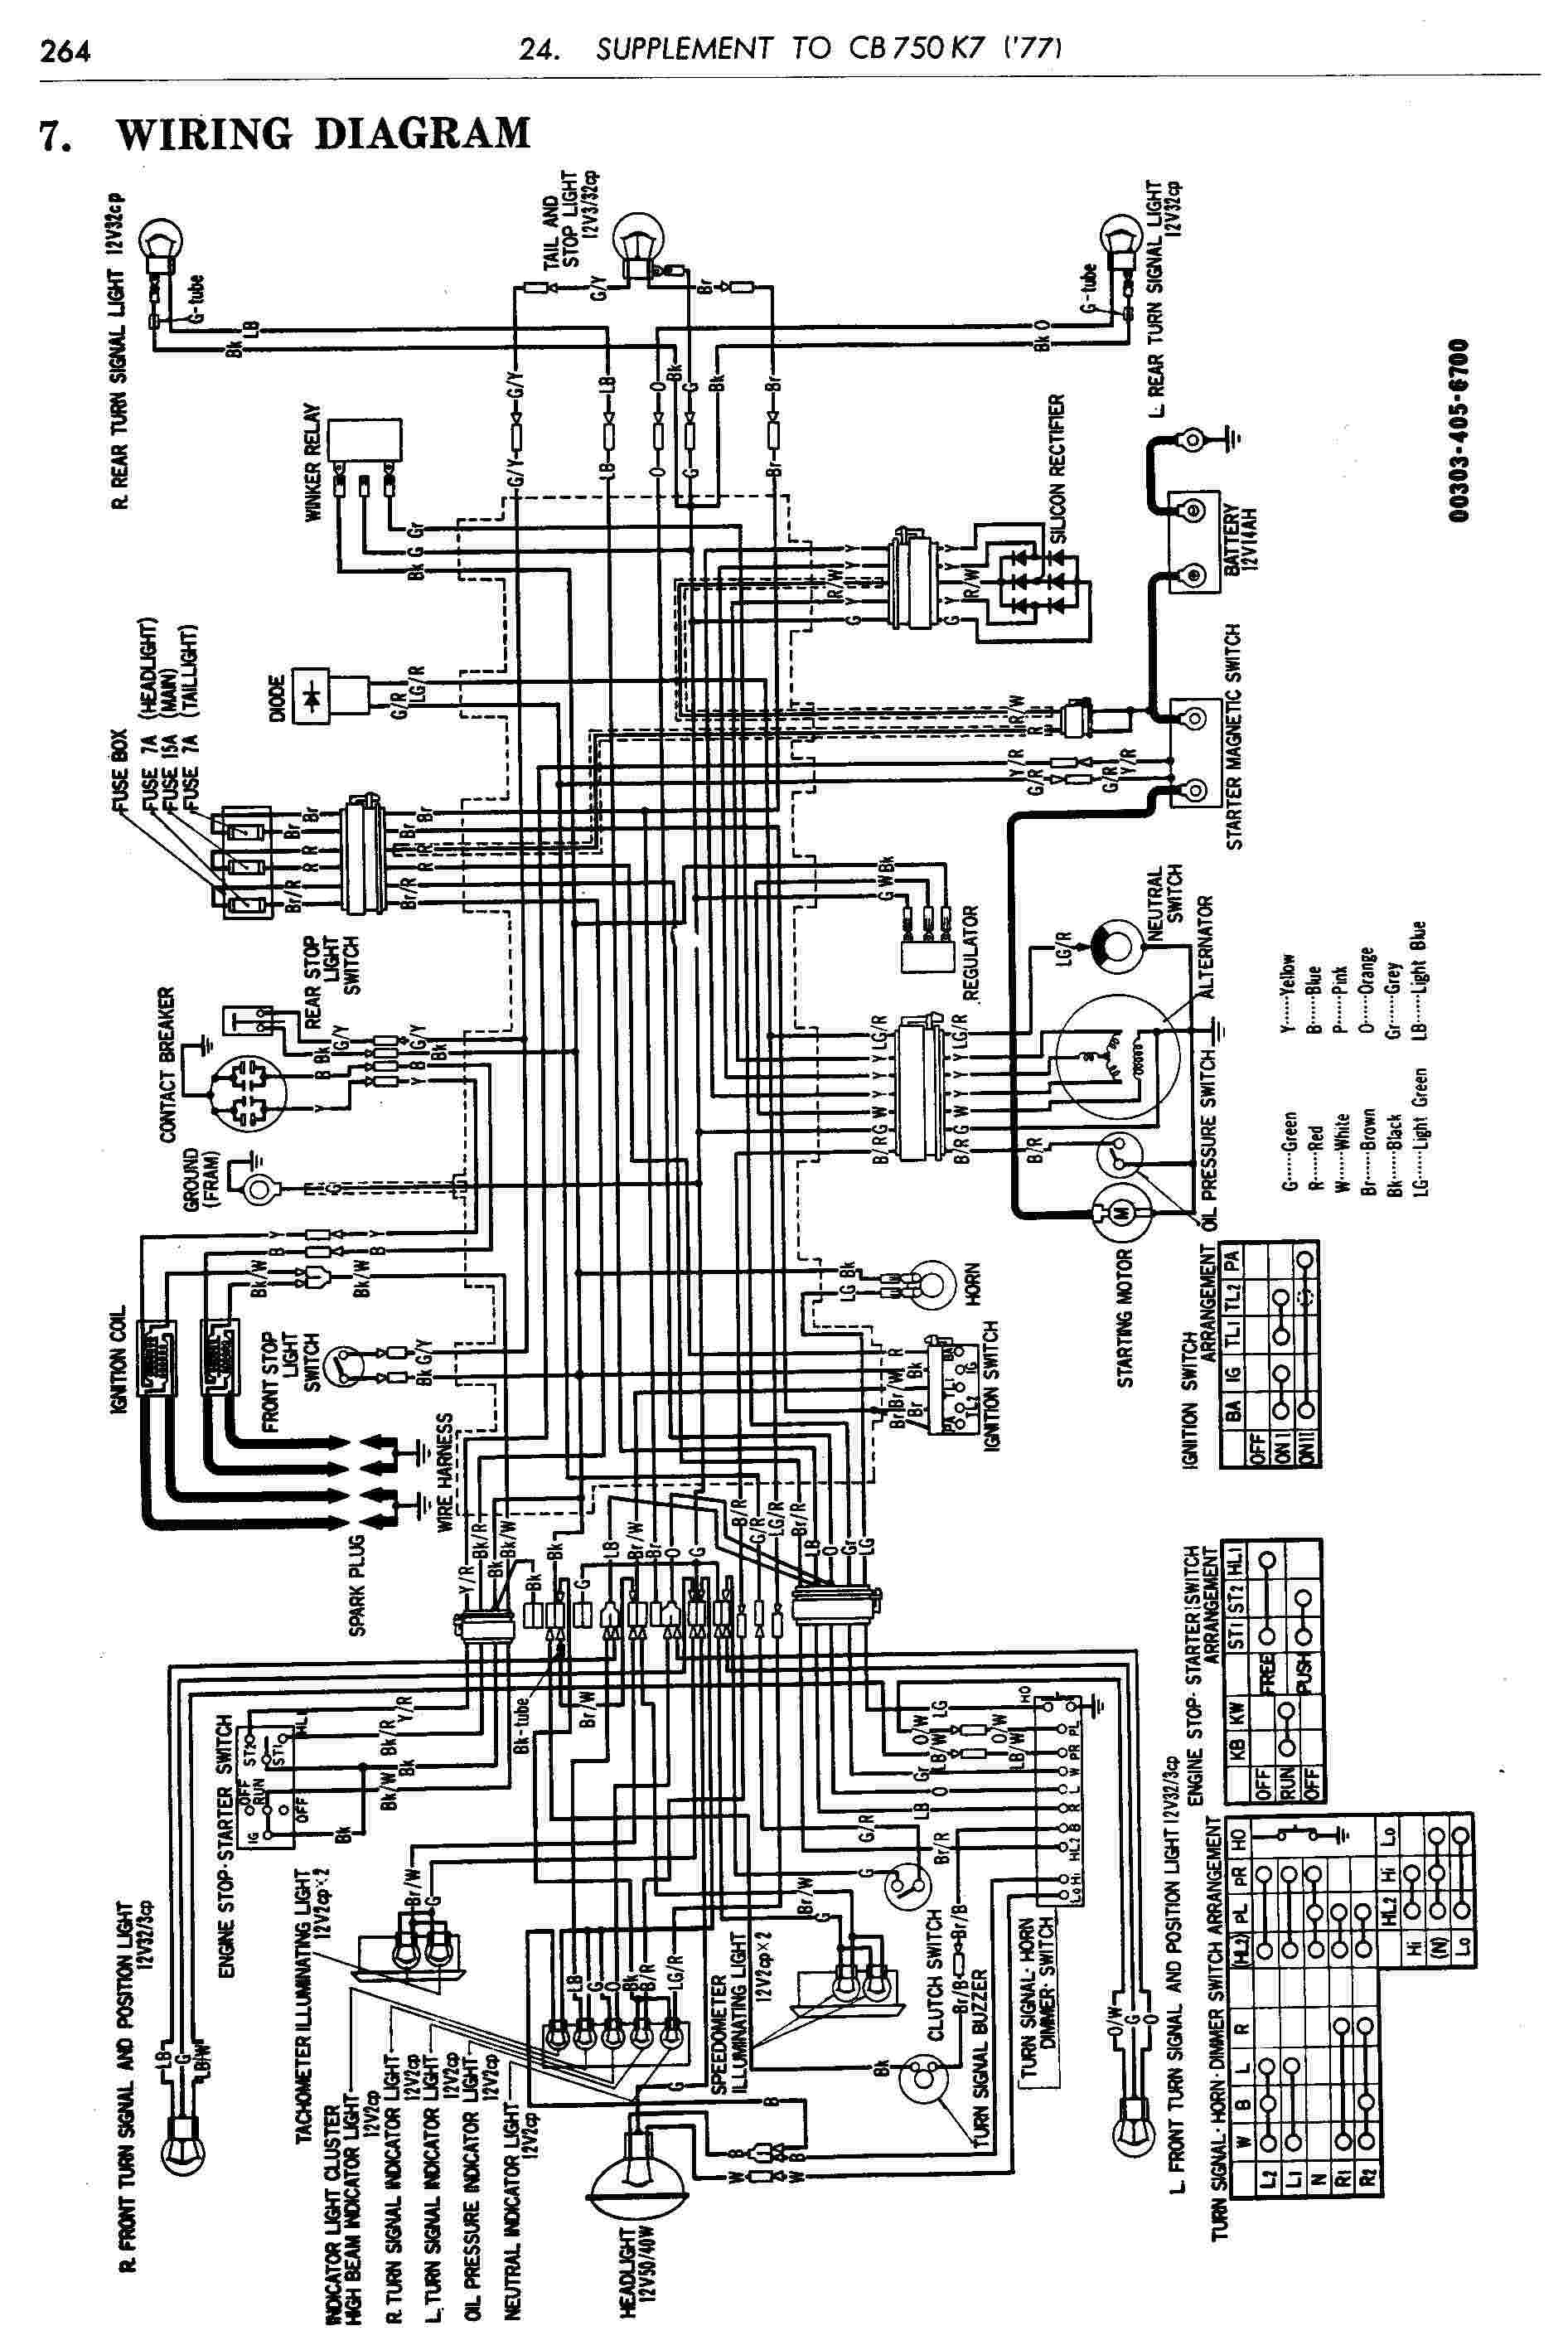 wiringK7 honda cb750k2 cb750 engine diagram at alyssarenee.co